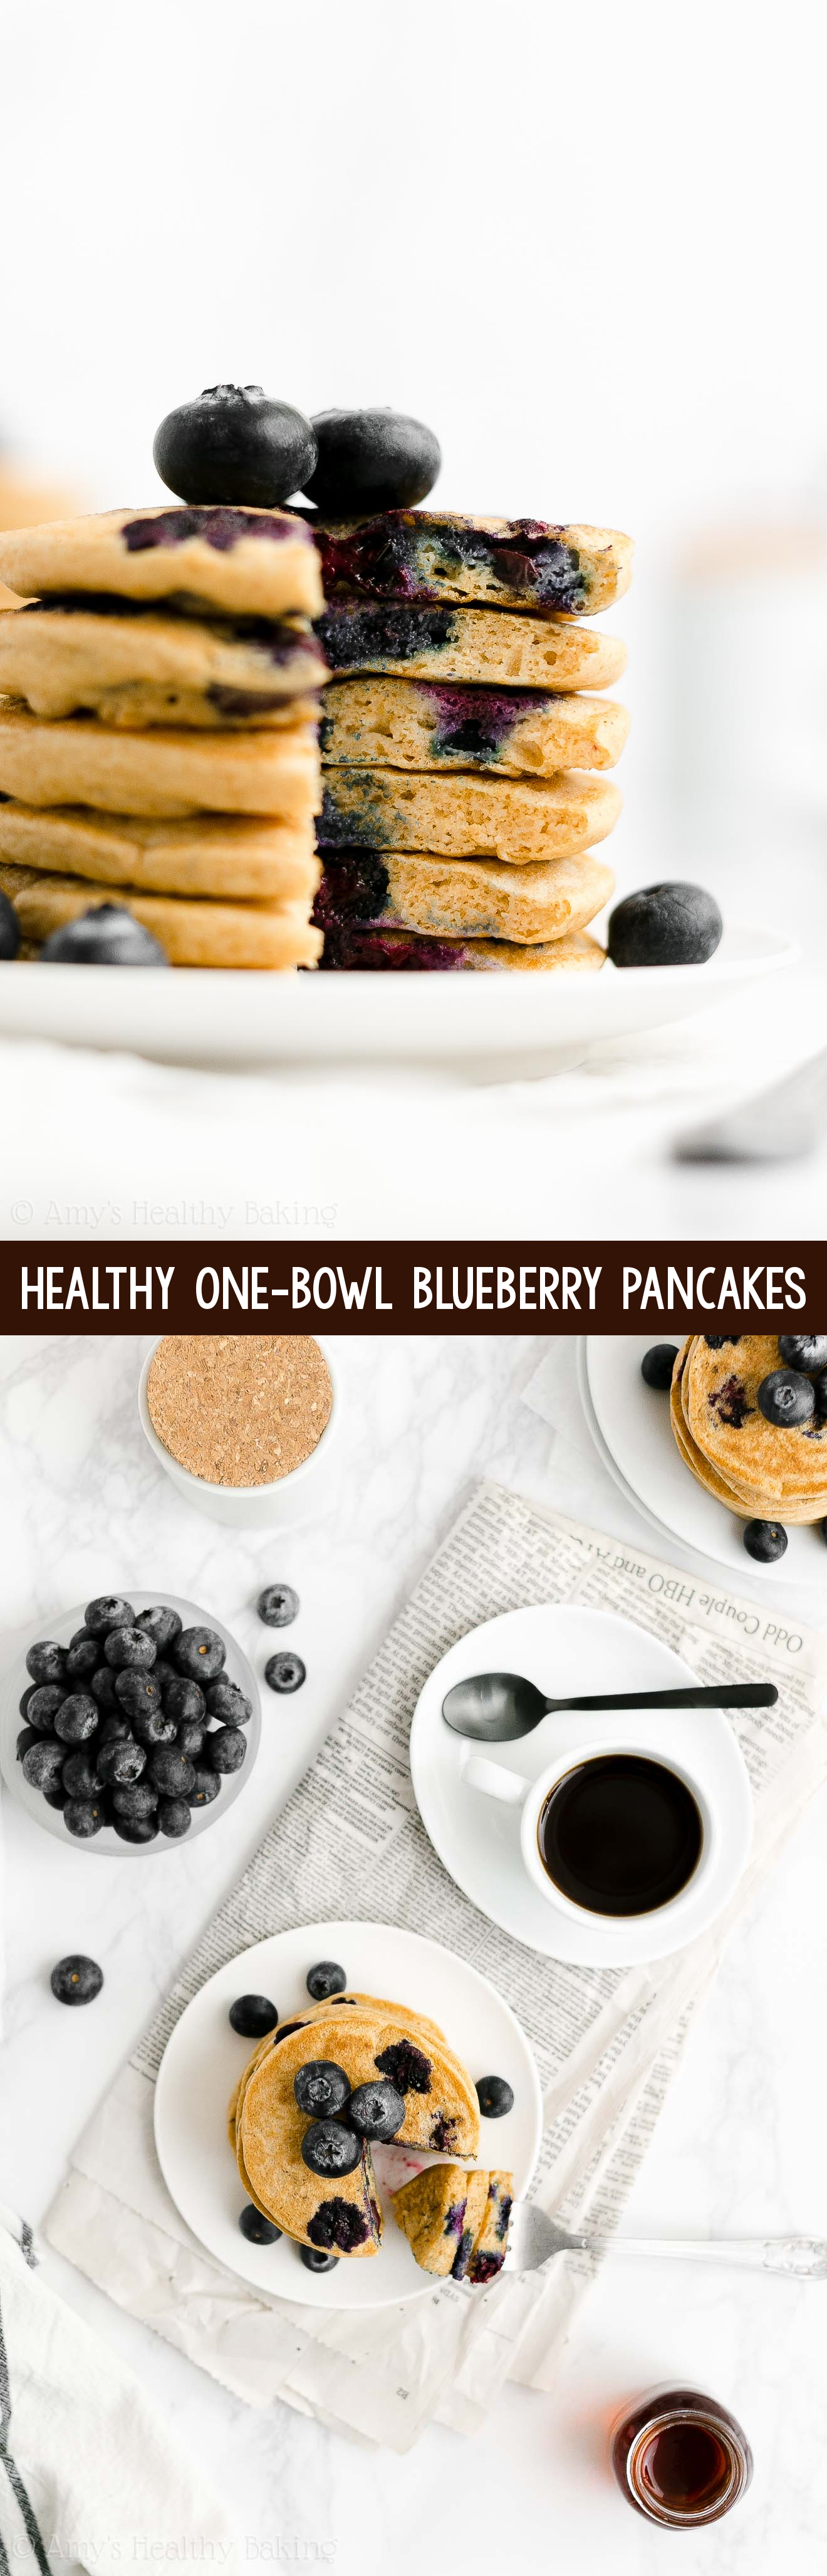 ULTIMATE Best Easy Healthy Clean Eating Fluffy One-Bowl Blueberry Pancakes